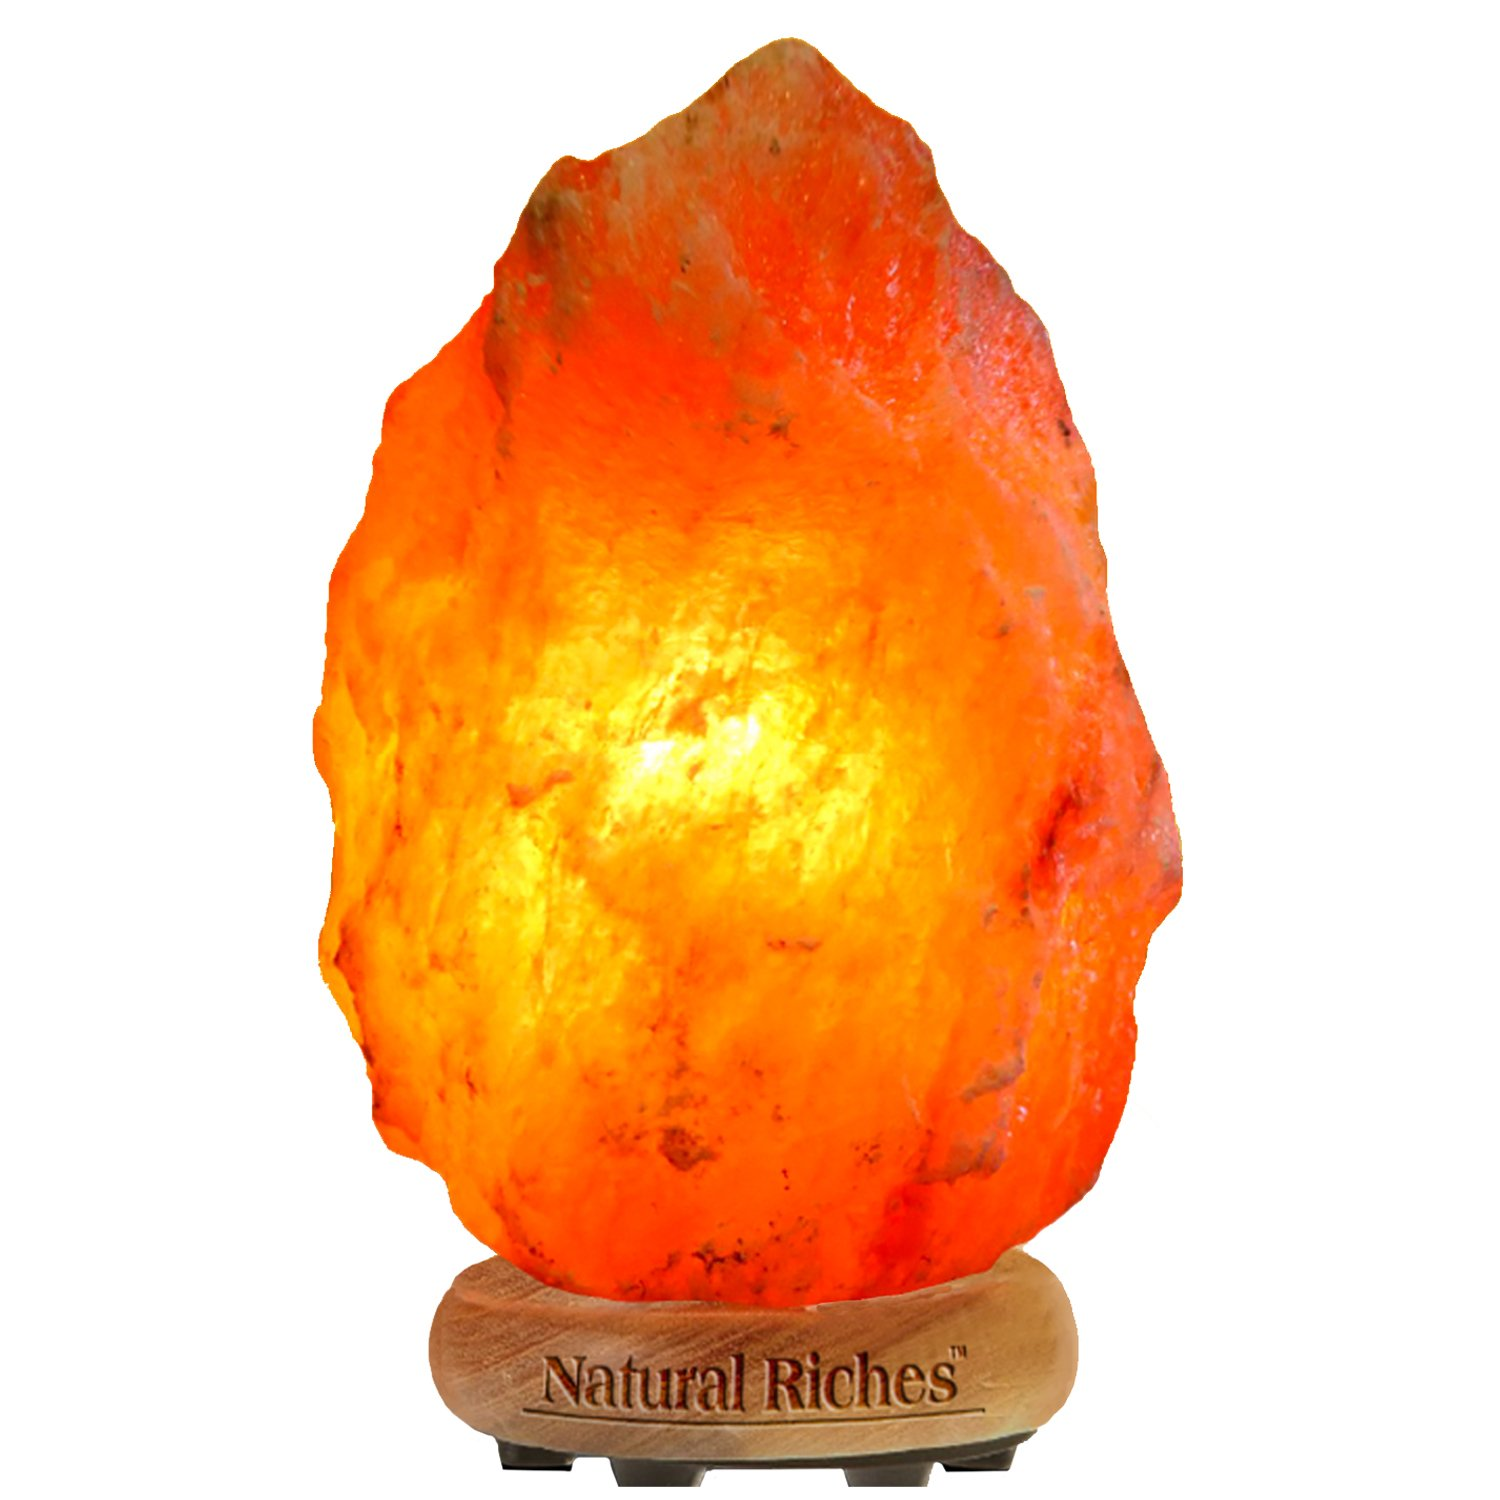 Natural Riches Himalayan Salt Lamp - Hand Carved Natural Himalayan Crystal Salt Rock Lamp, Wooden Base, Brightness Dimmer, 3 Bulbs, UL-Listed Cord and Gift Box - 8-11 lbs